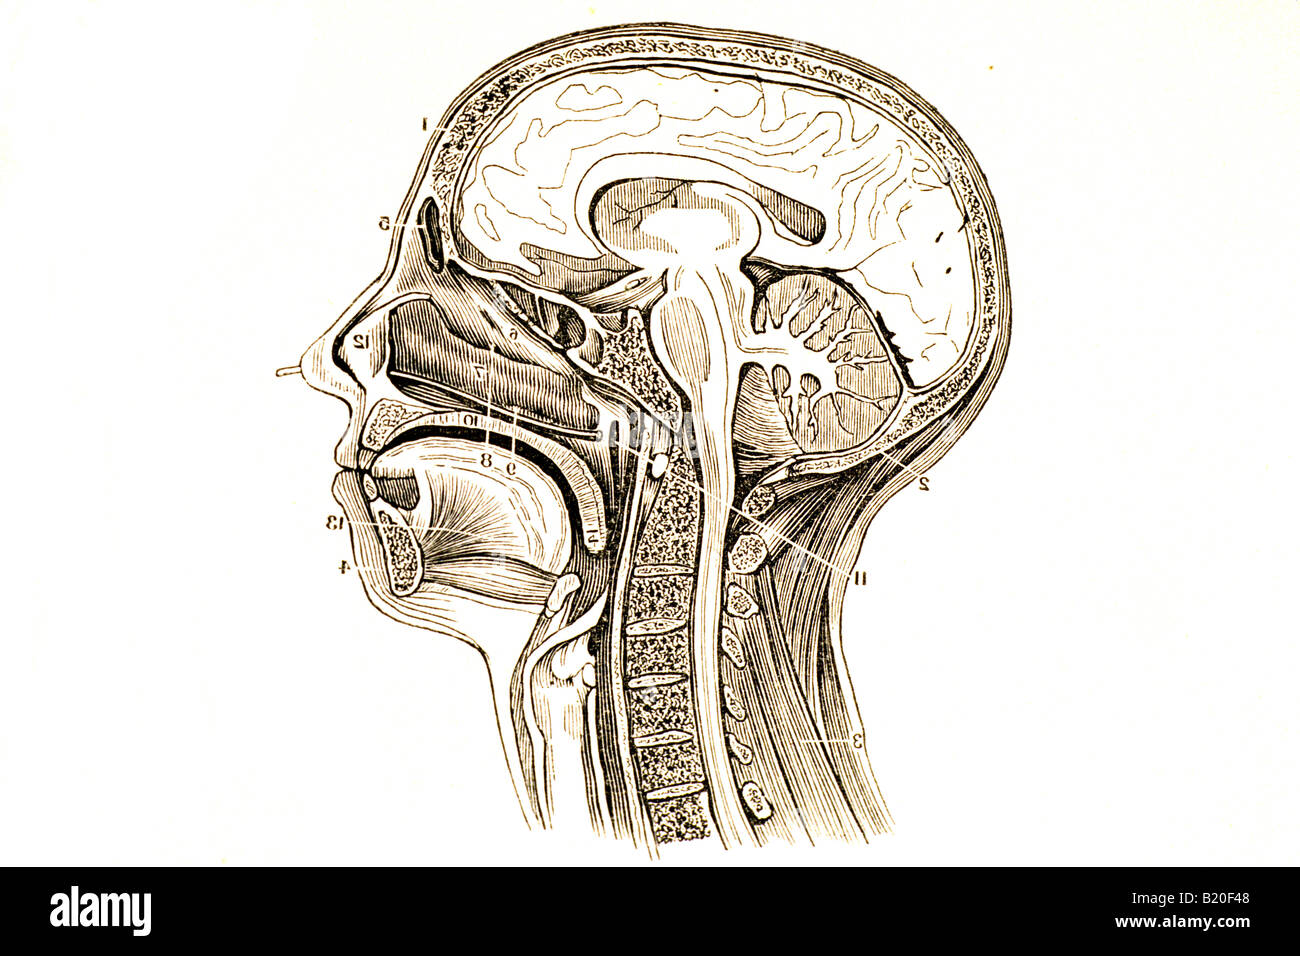 Head And Neck Arteries Stock Photos & Head And Neck Arteries Stock ...